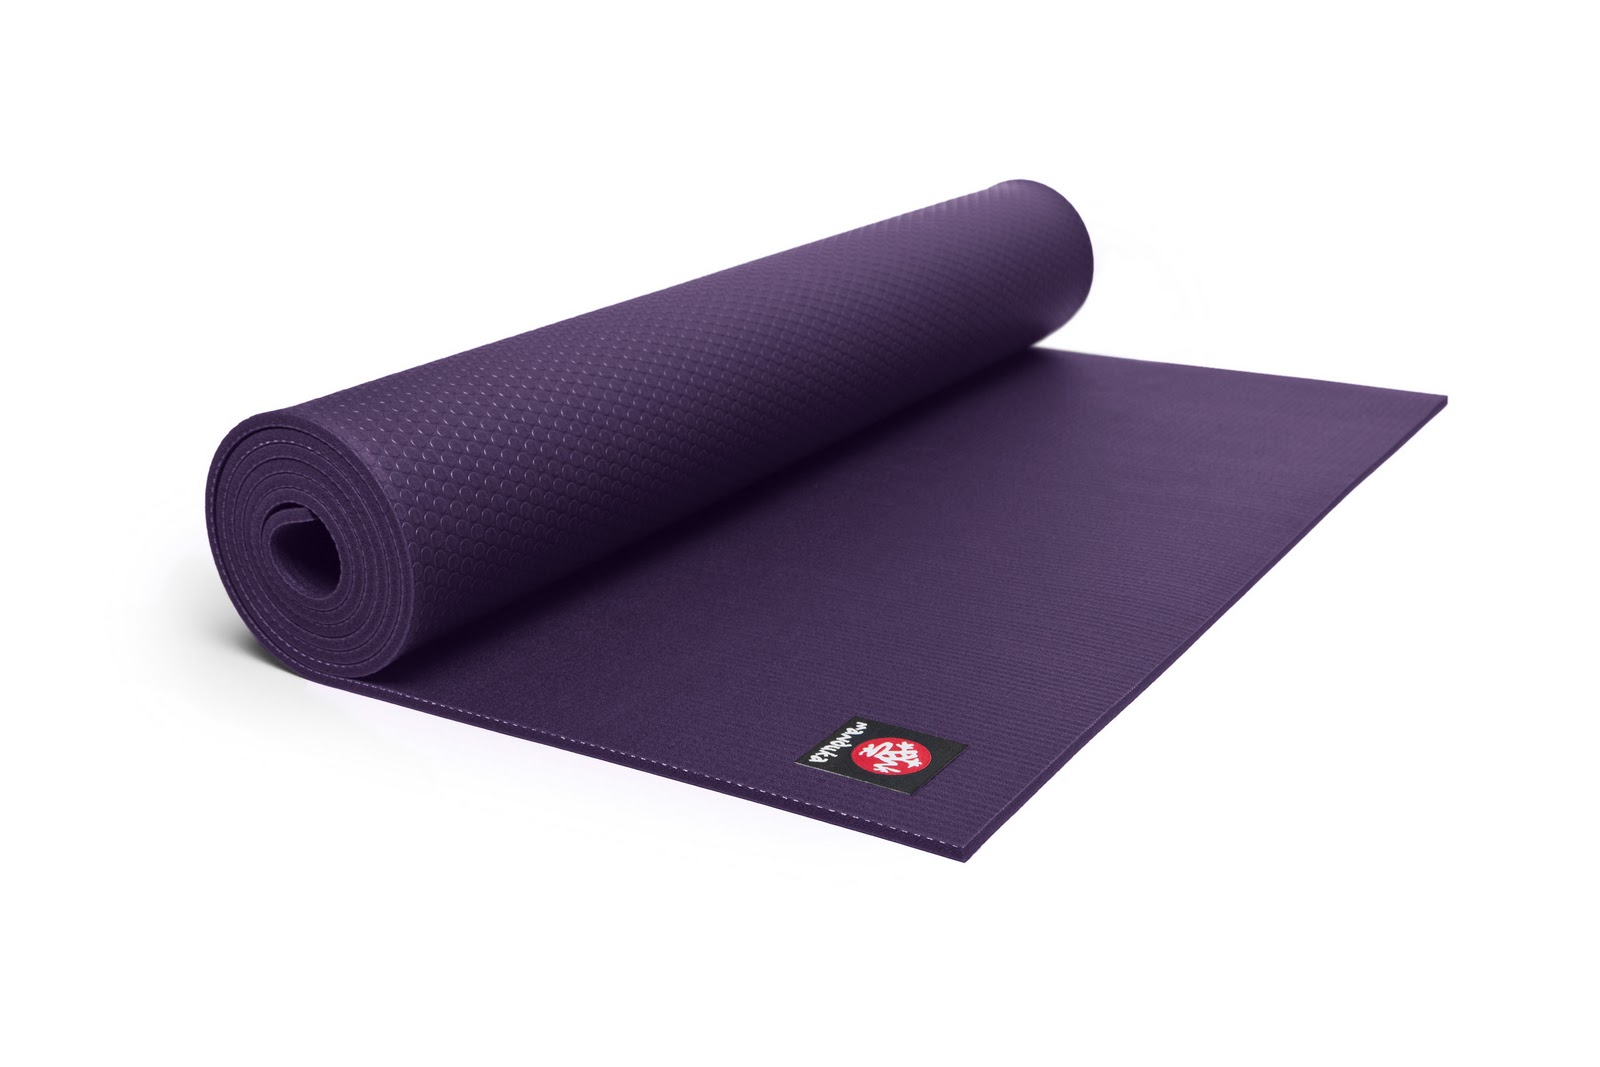 Manduka black magic yoga mat